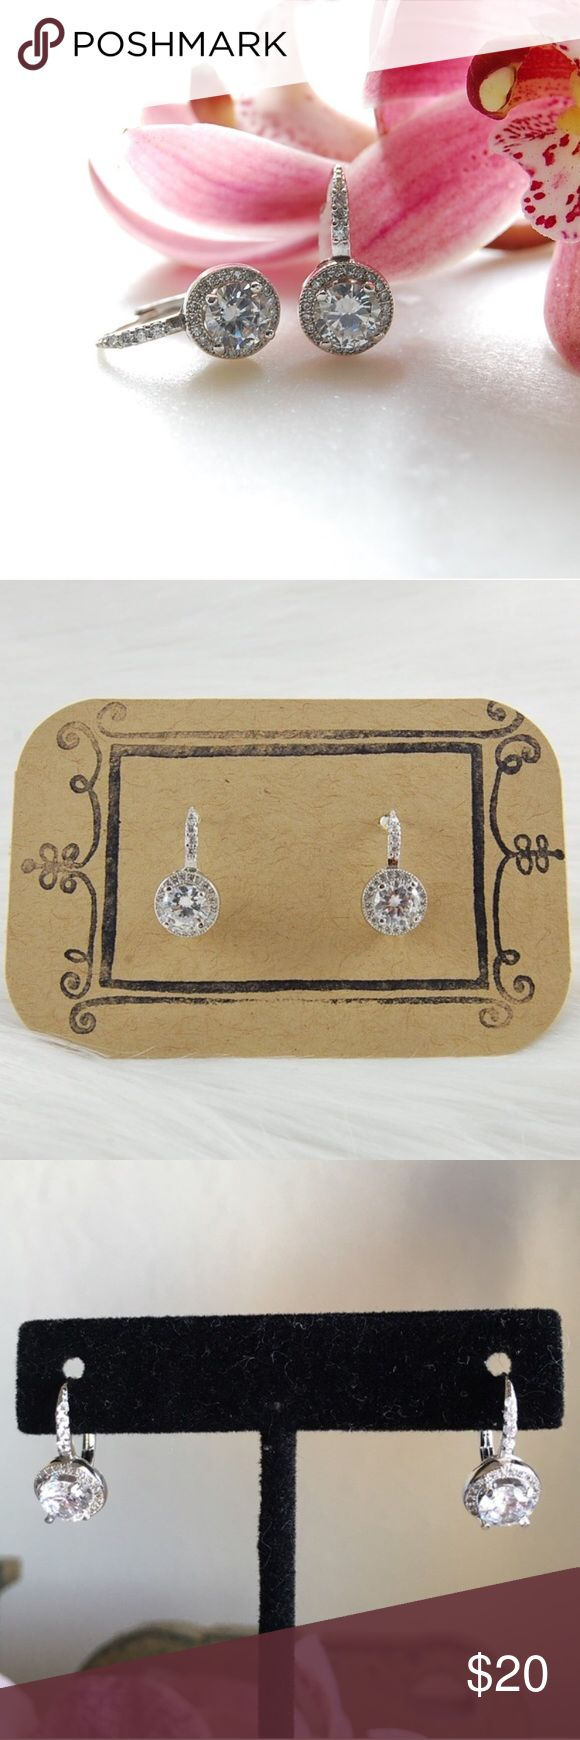 "CZ Earrings | French Clip Cute and dainty cubic zirconia earrings. Single CZ is .75 karats/6mm and is surrounded by additional CZsz French clip so it is for pierced ears but encloses completely. Measures 3/4"" long. Includes box. Price firm unless bundled. {E3039}    Instagram: @bringingupsuns Jewelry Earrings"